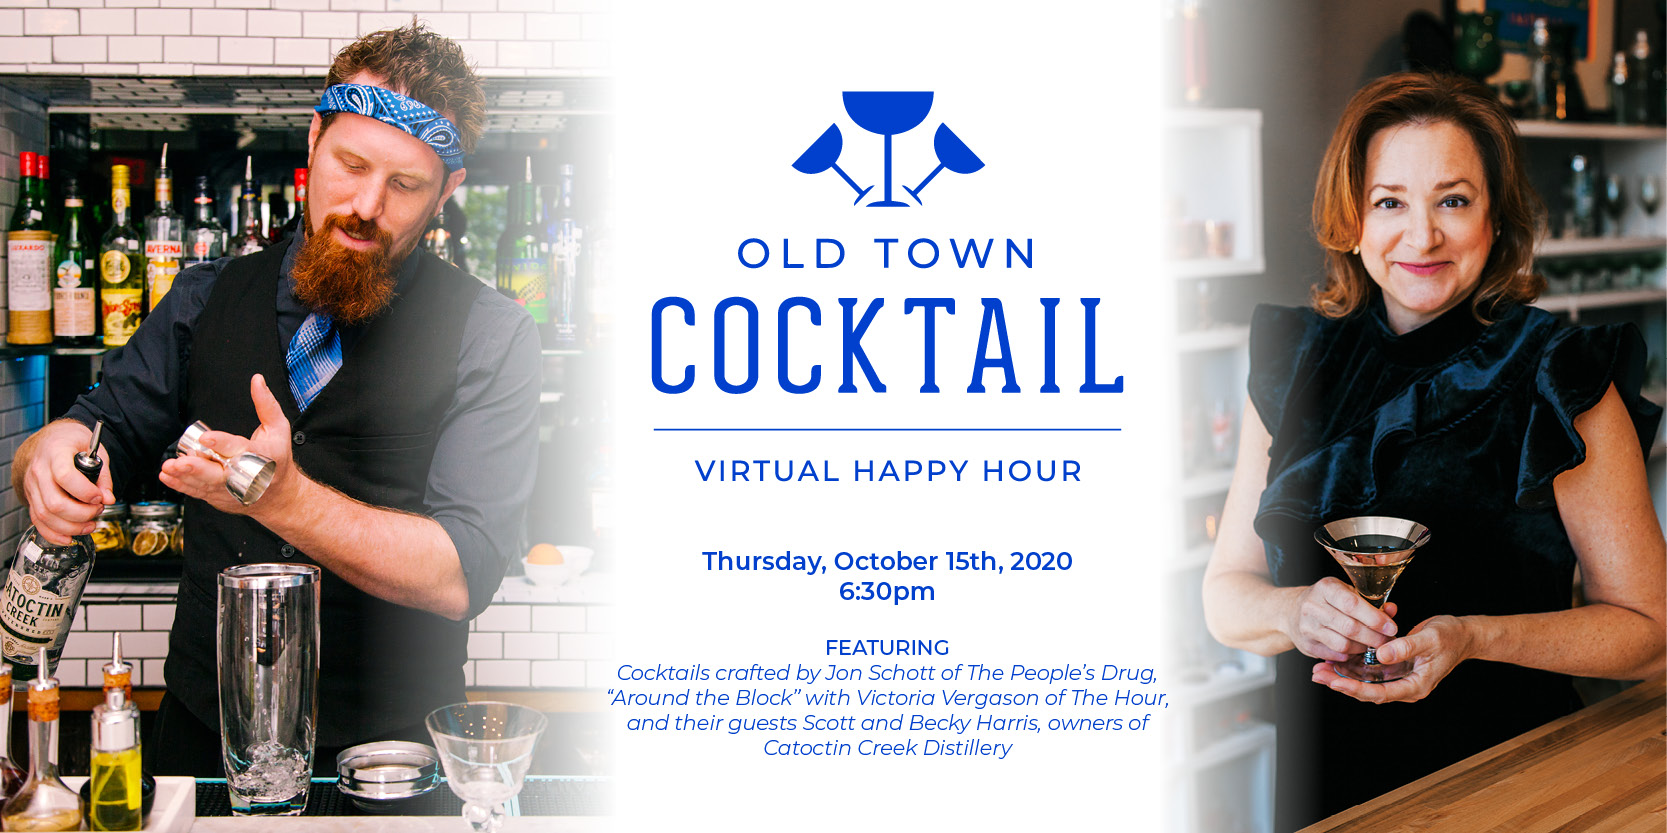 Old Town Cocktail | Virtual Happy Hour Premier